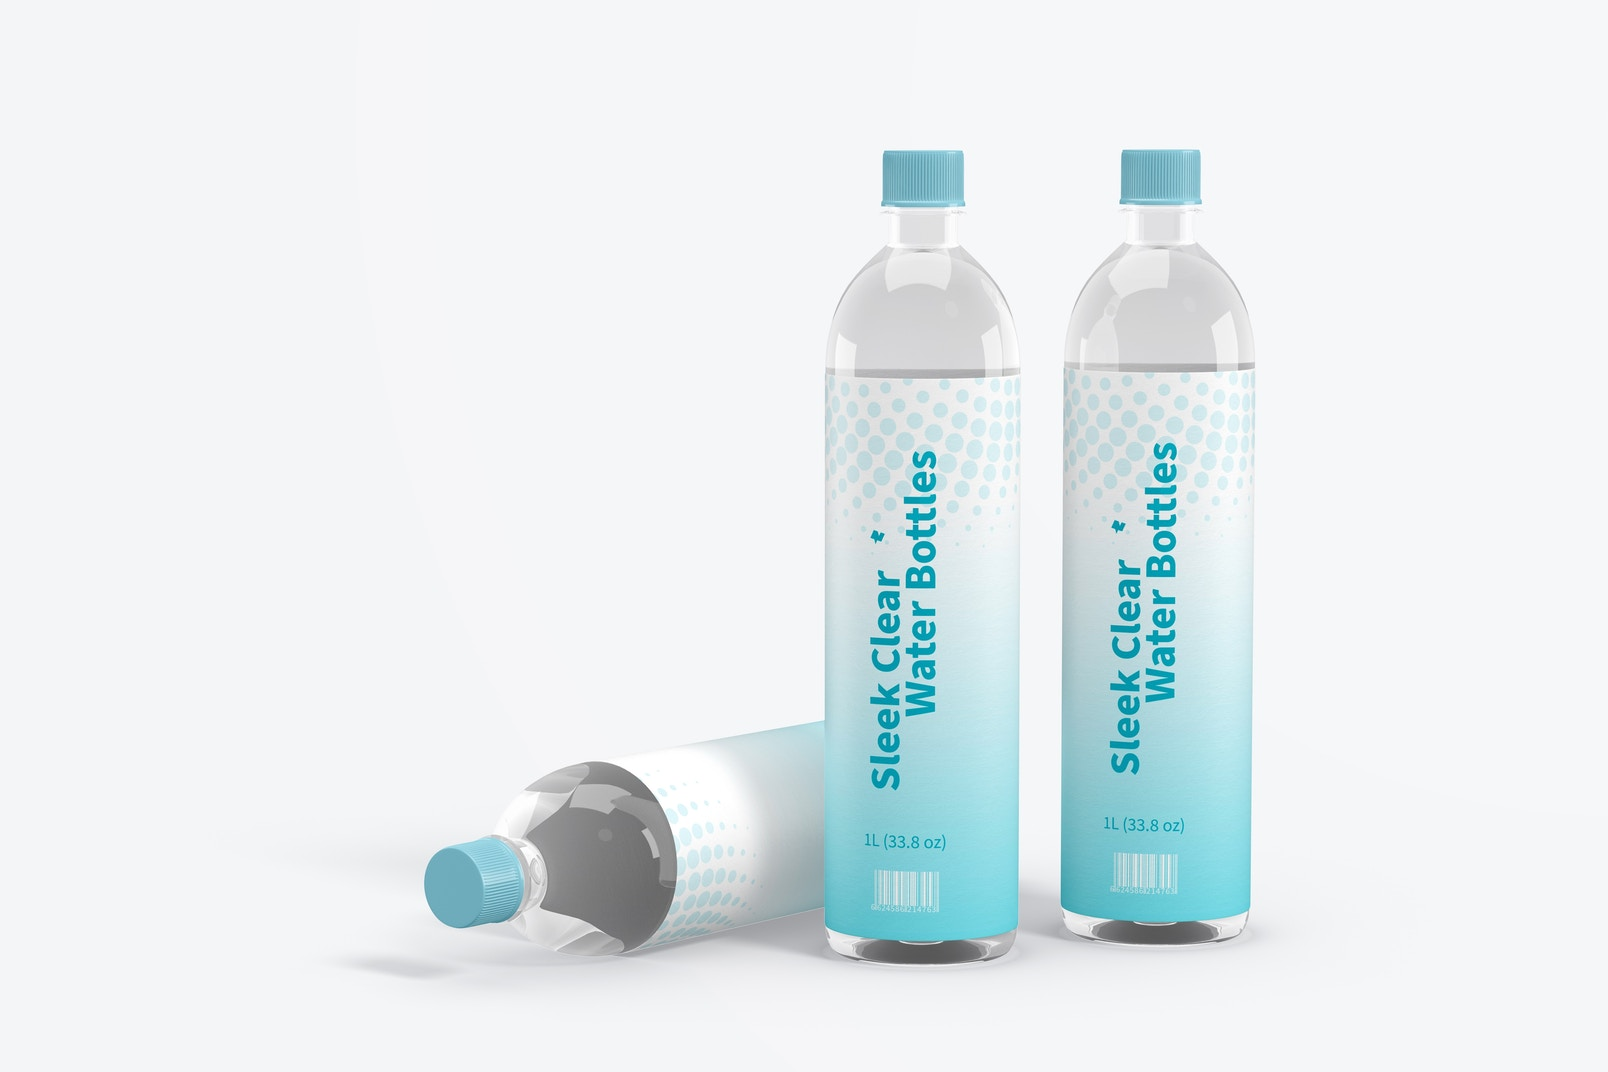 1L Sleek Clear Water Bottles Mockup, Standing and Dropped